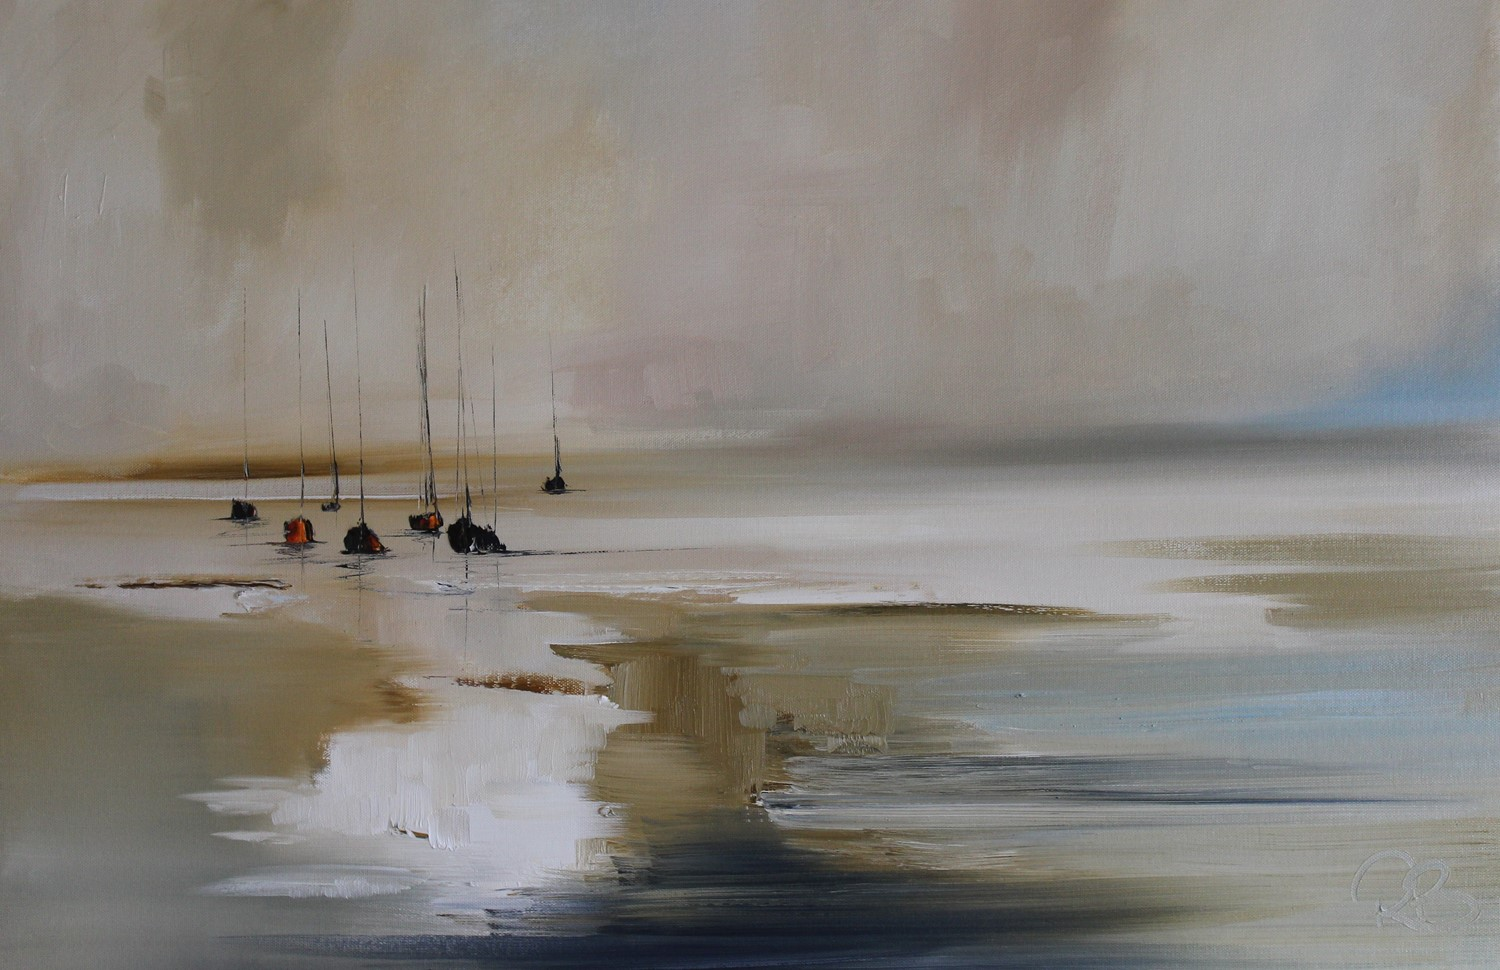 'Pools gather as the Tide slips out' by artist Rosanne Barr